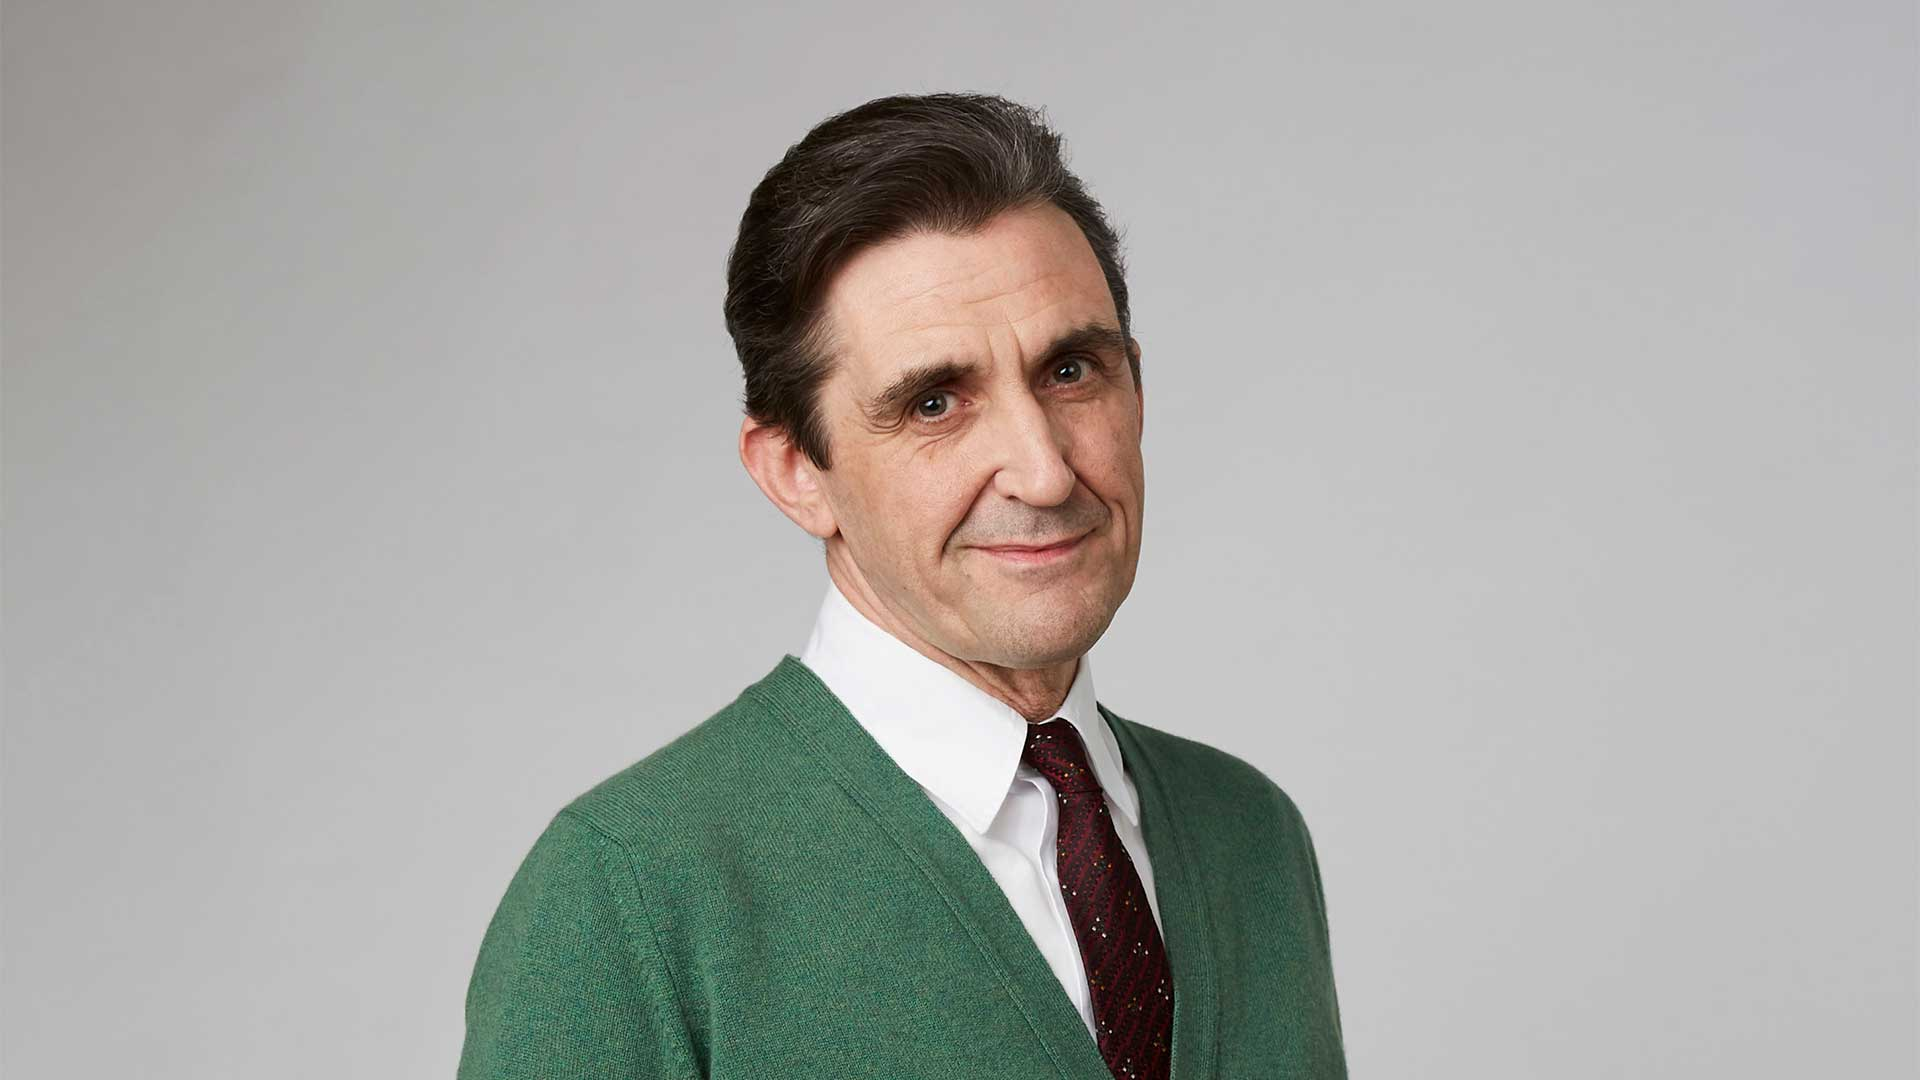 Stephen McGann plays Dr. Patrick Turner.